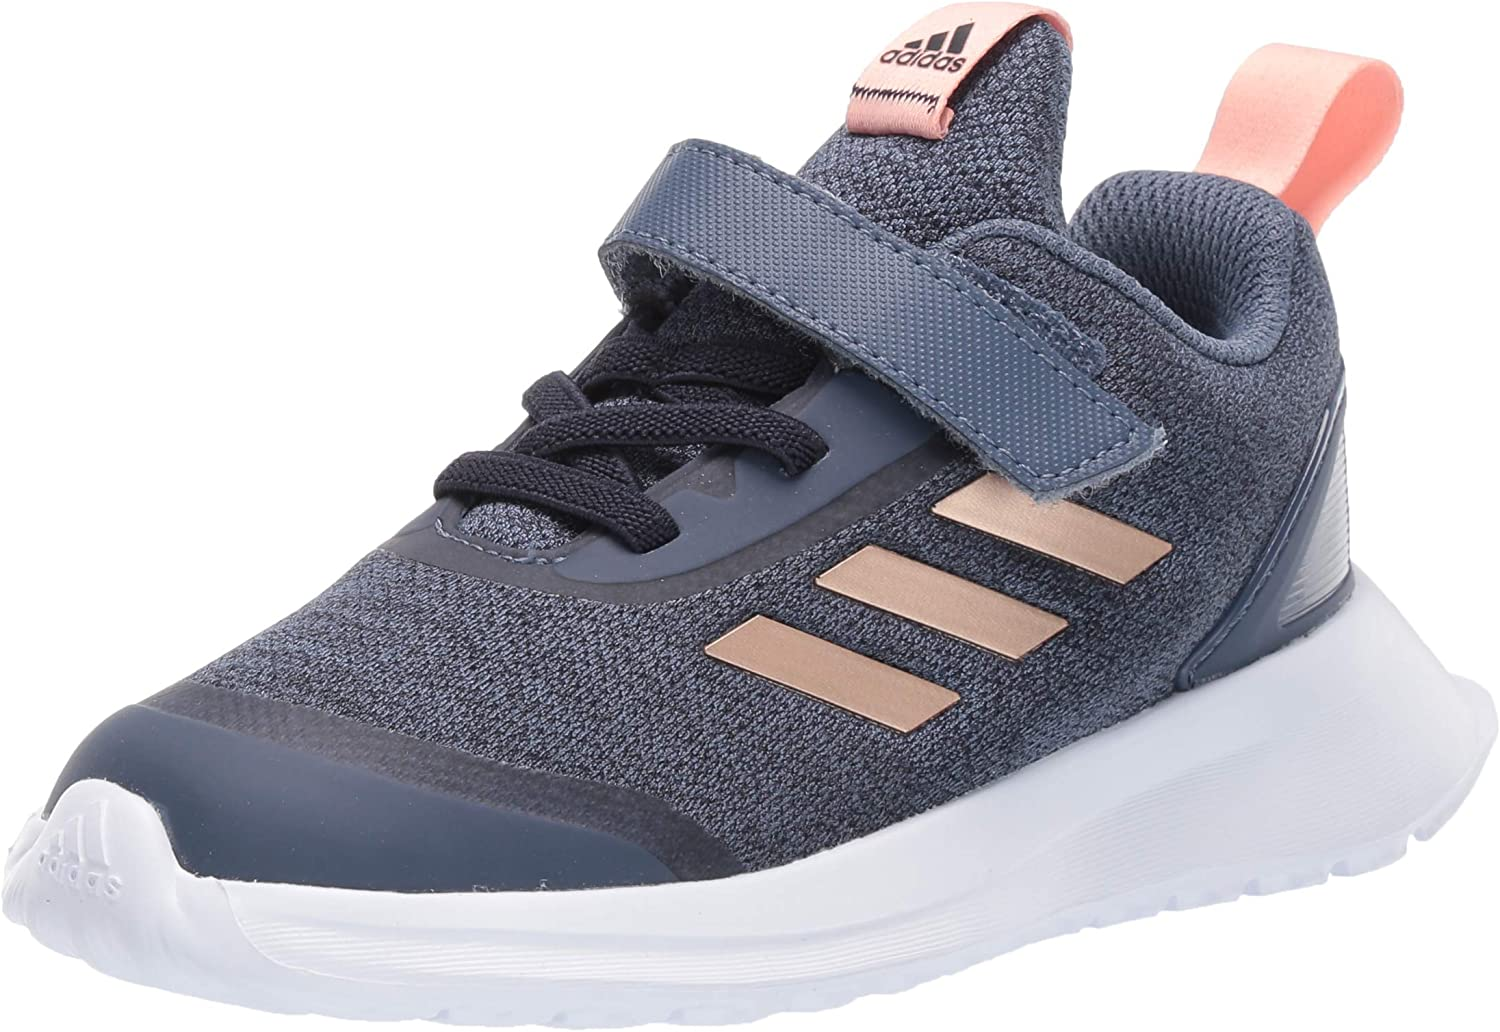 Limited Special Price adidas Unisex-Child RapidaRun X Running Clearance SALE! Limited time! Shoe El